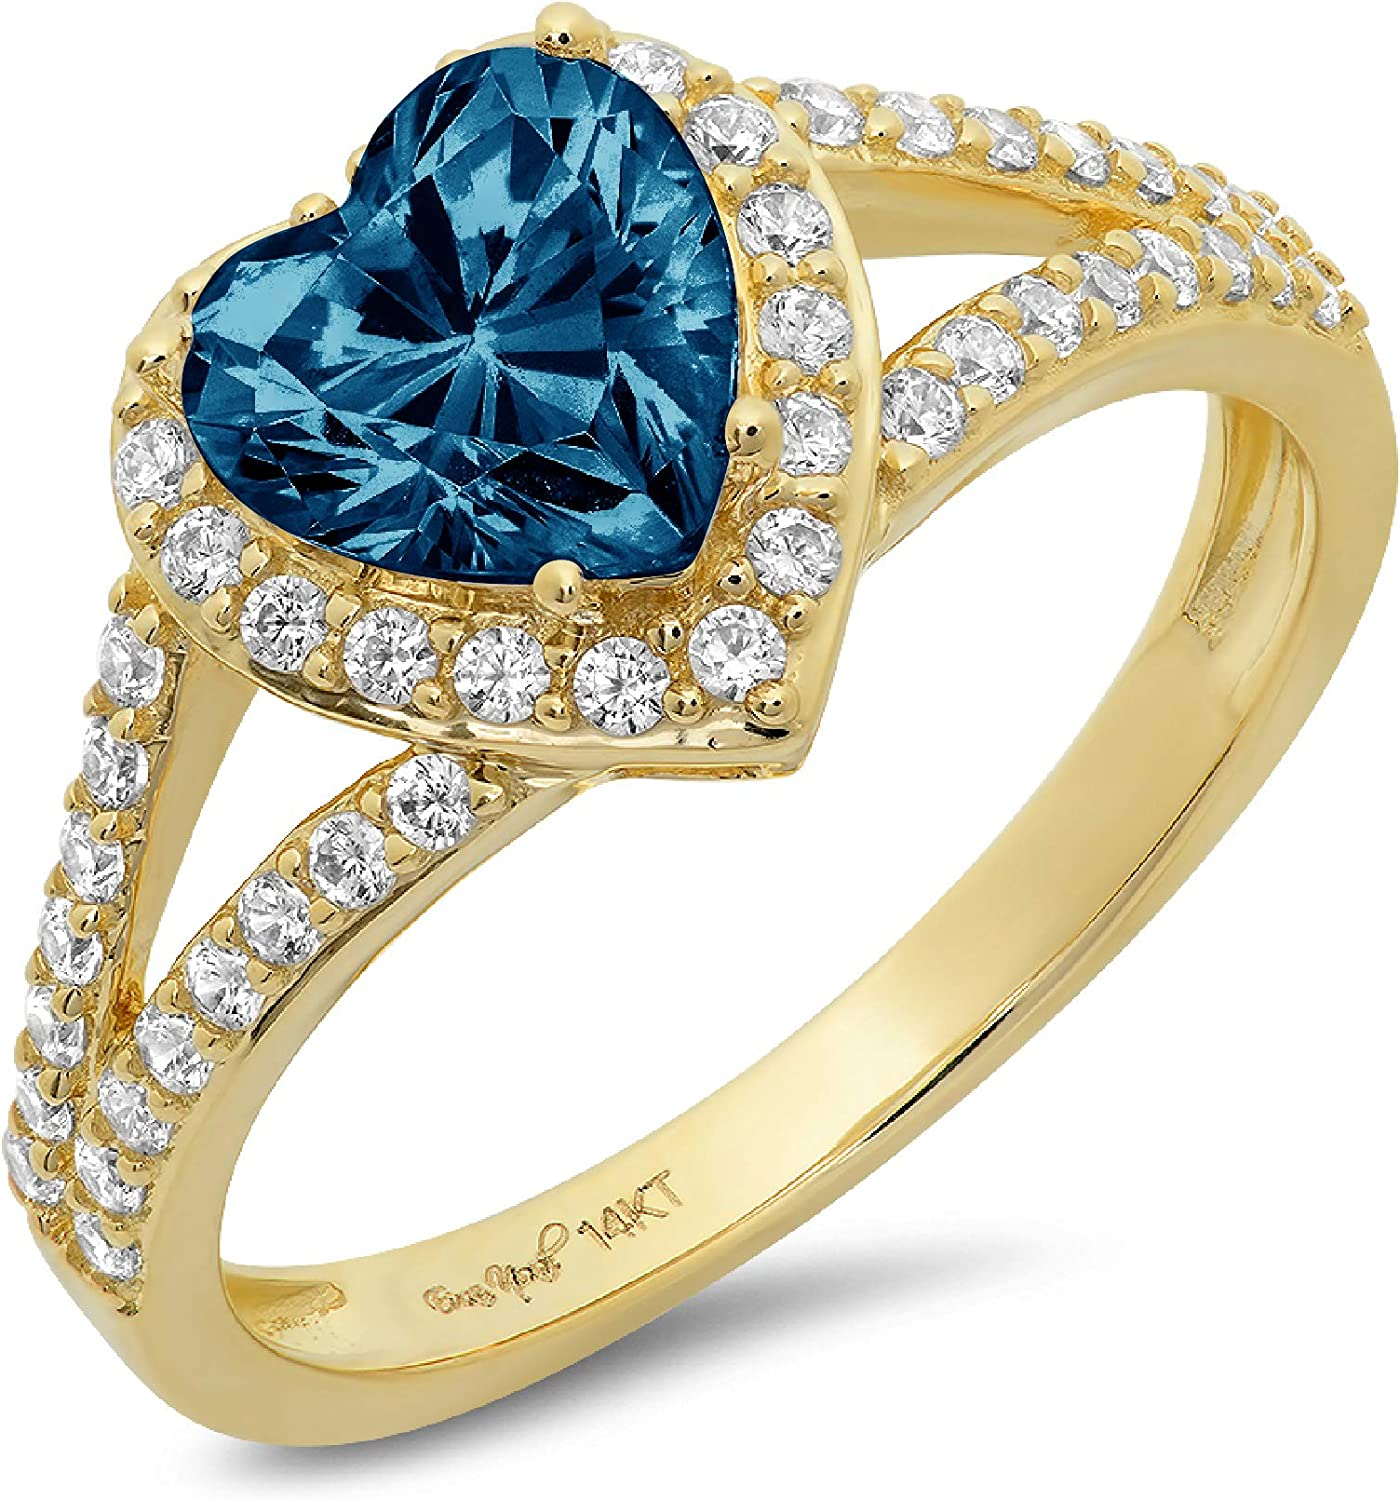 1.72ct Heart Cut Solitaire with Accent Halo split shank Natural London Blue Topaz Gem Stone VVS1 Designer Modern Statement Ring Solid 14k Yellow Gold Clara Pucci